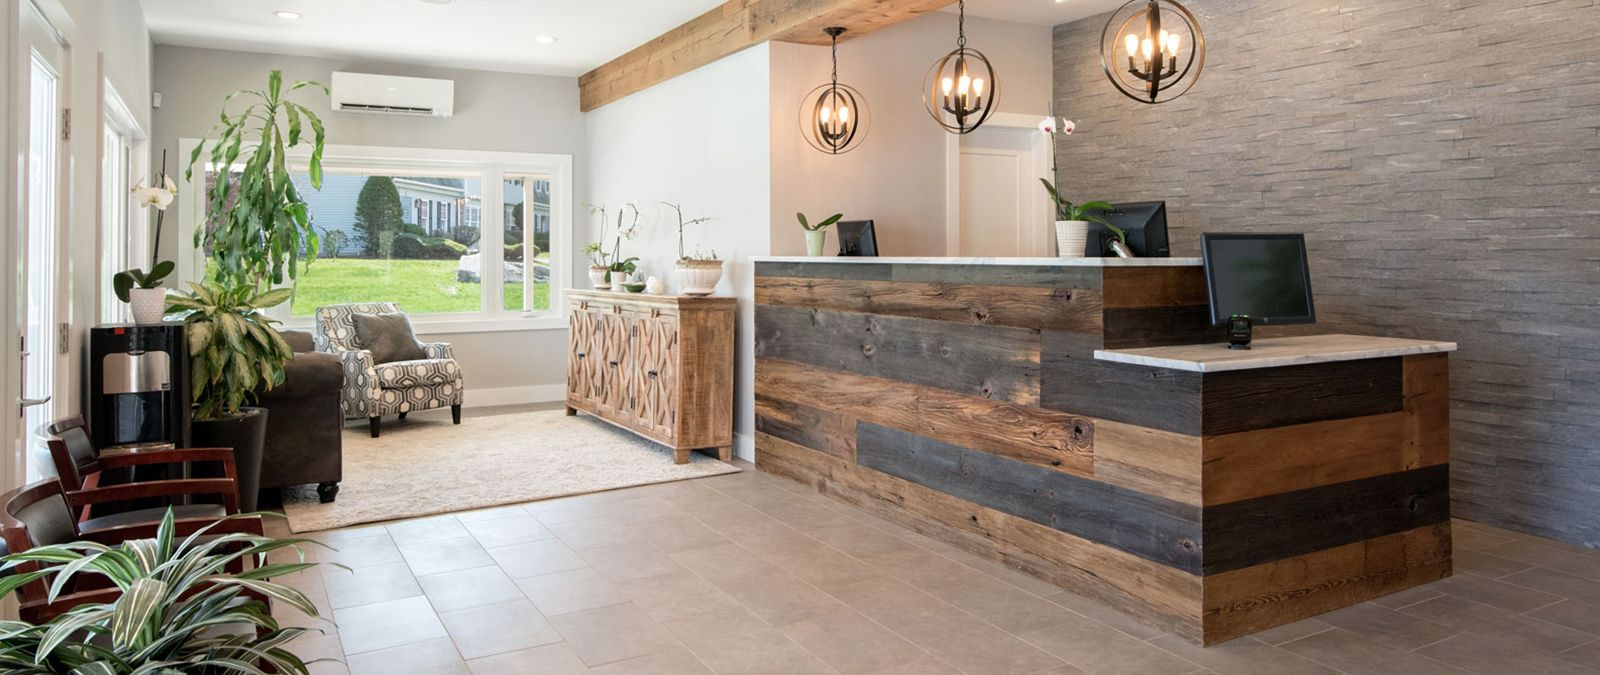 Coastal Chiropractic & Wellness' check in and waiting area